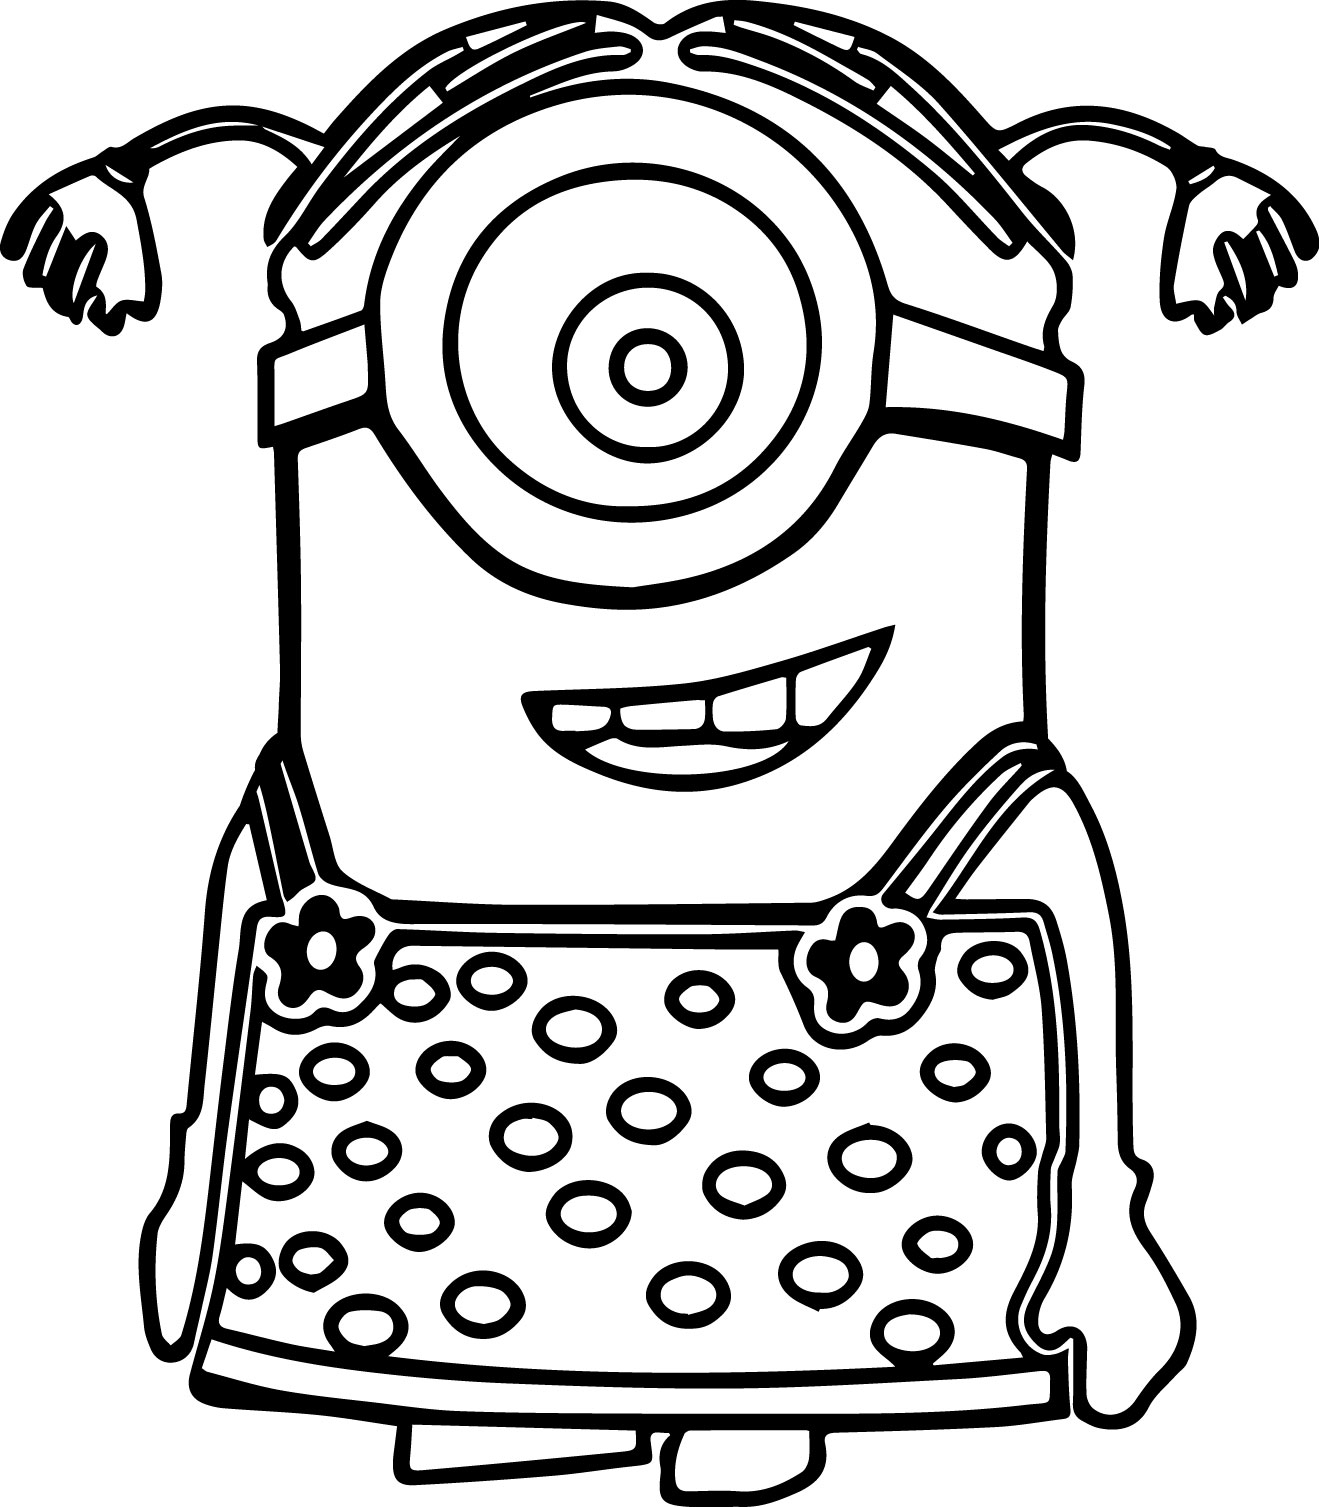 free printable minion coloring pages minion coloring pages fotolipcom rich image and wallpaper printable minion coloring pages free